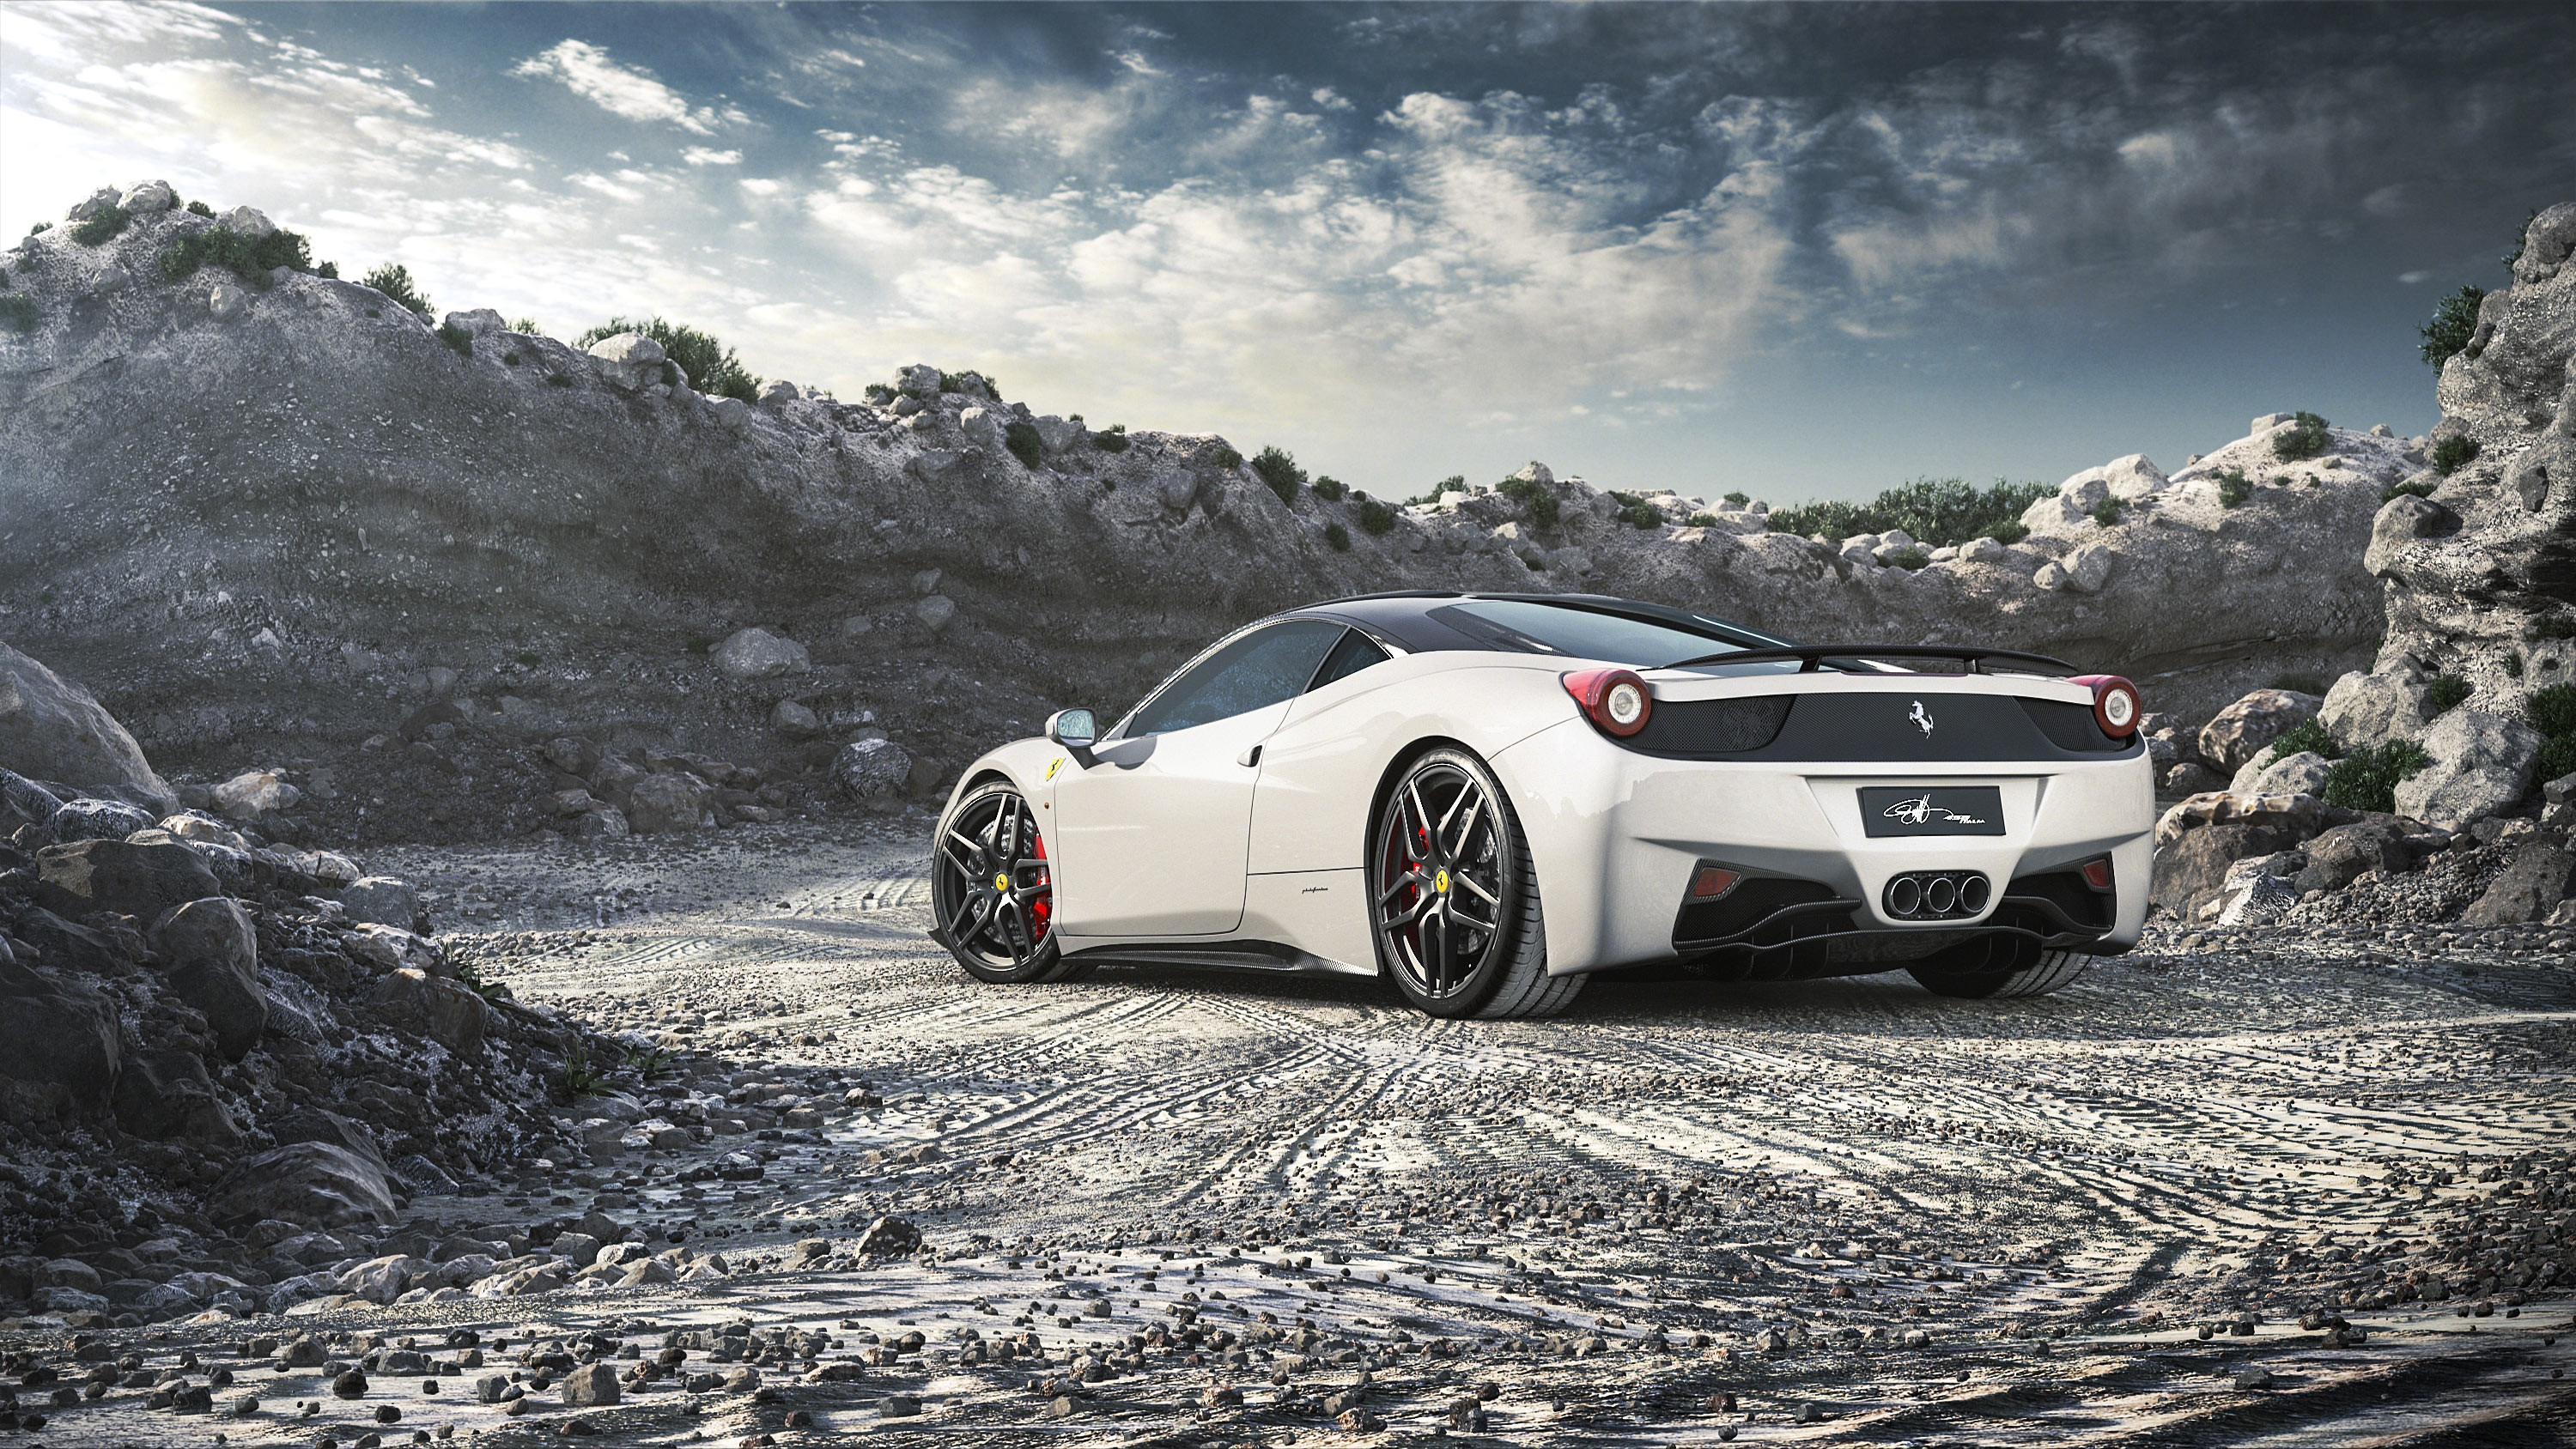 3000x1688 - Ferrari 458 Italia Wallpapers 11